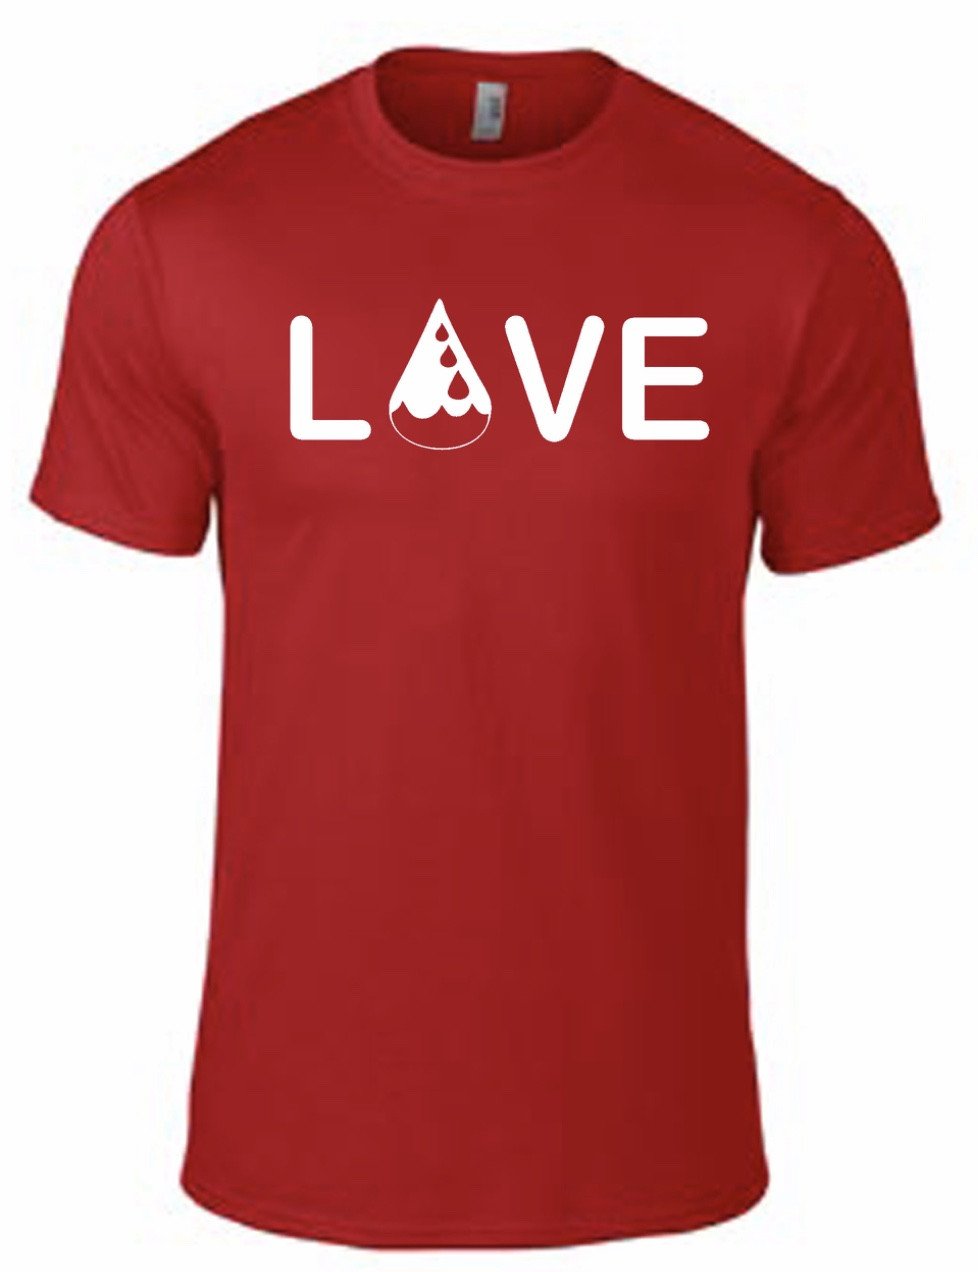 Drop of Love Tee - Red